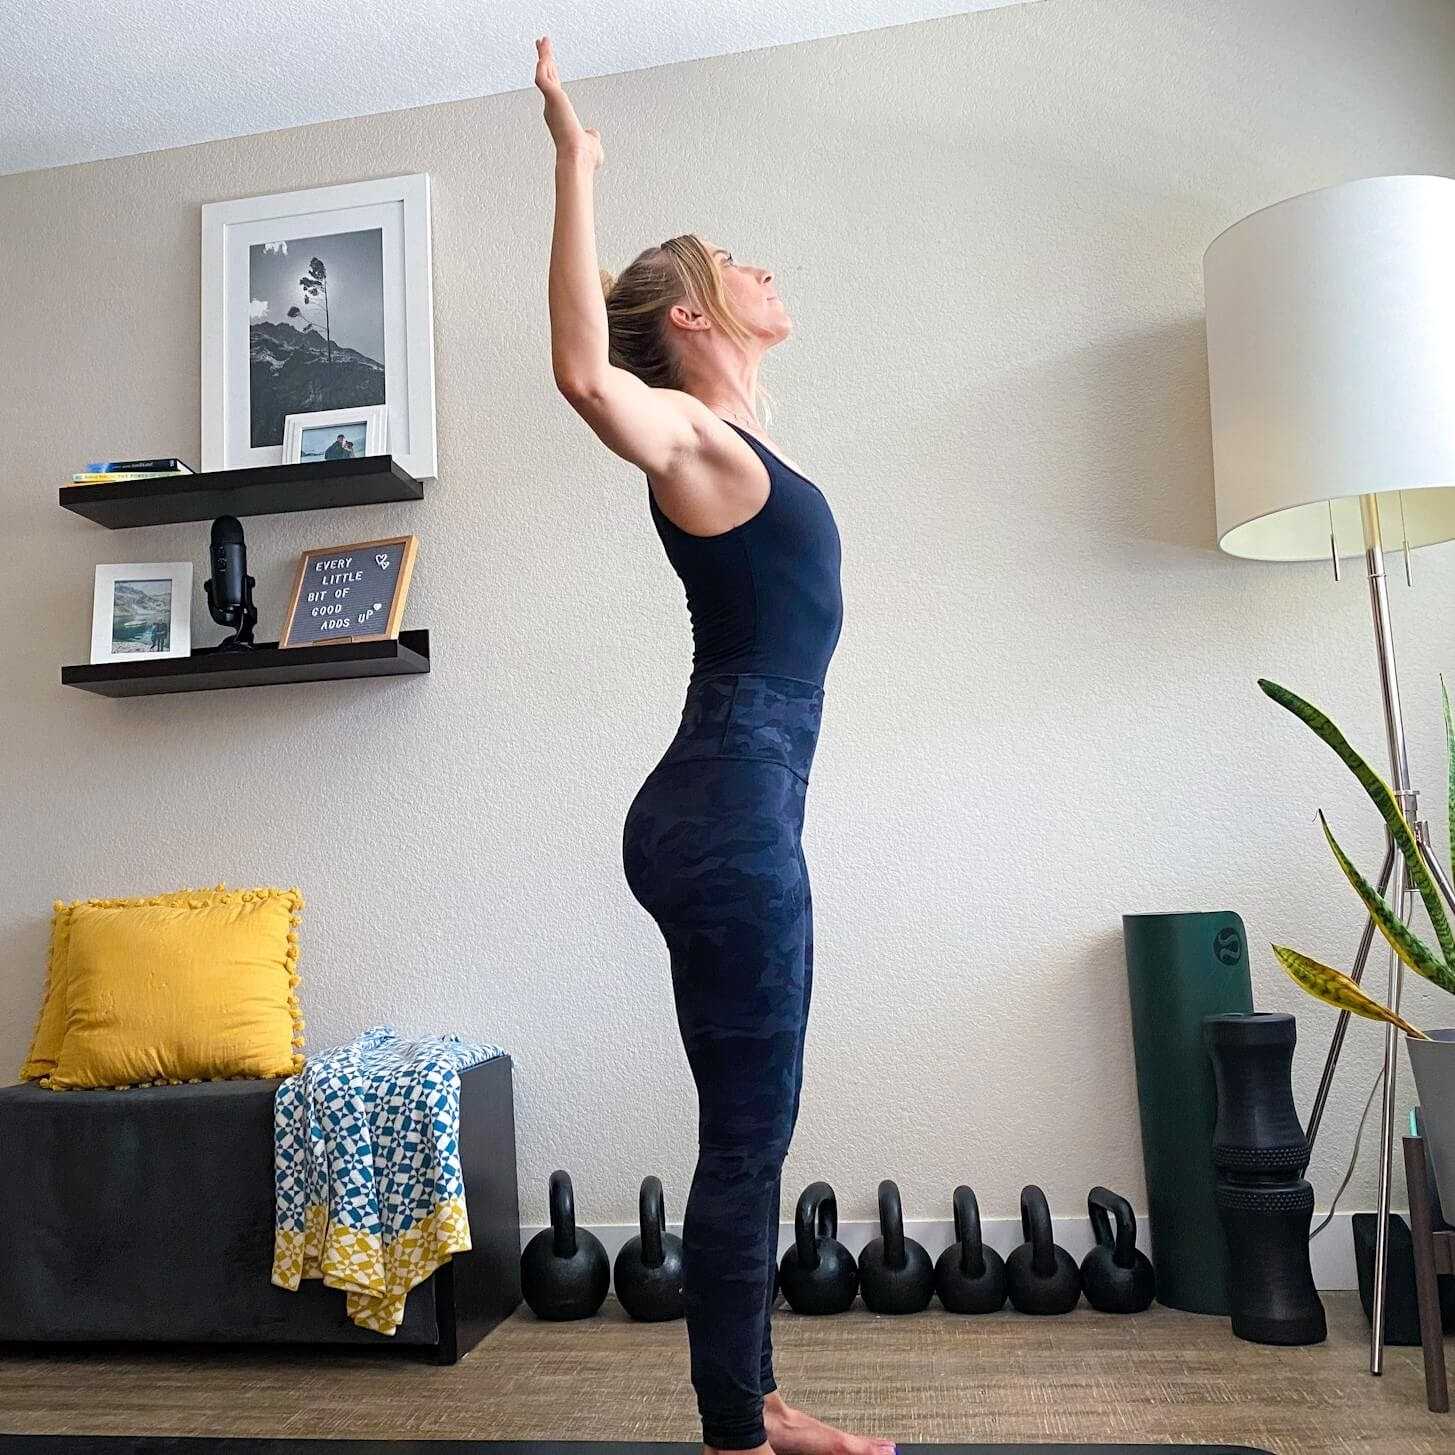 Emily standing on her mat with catcus arms